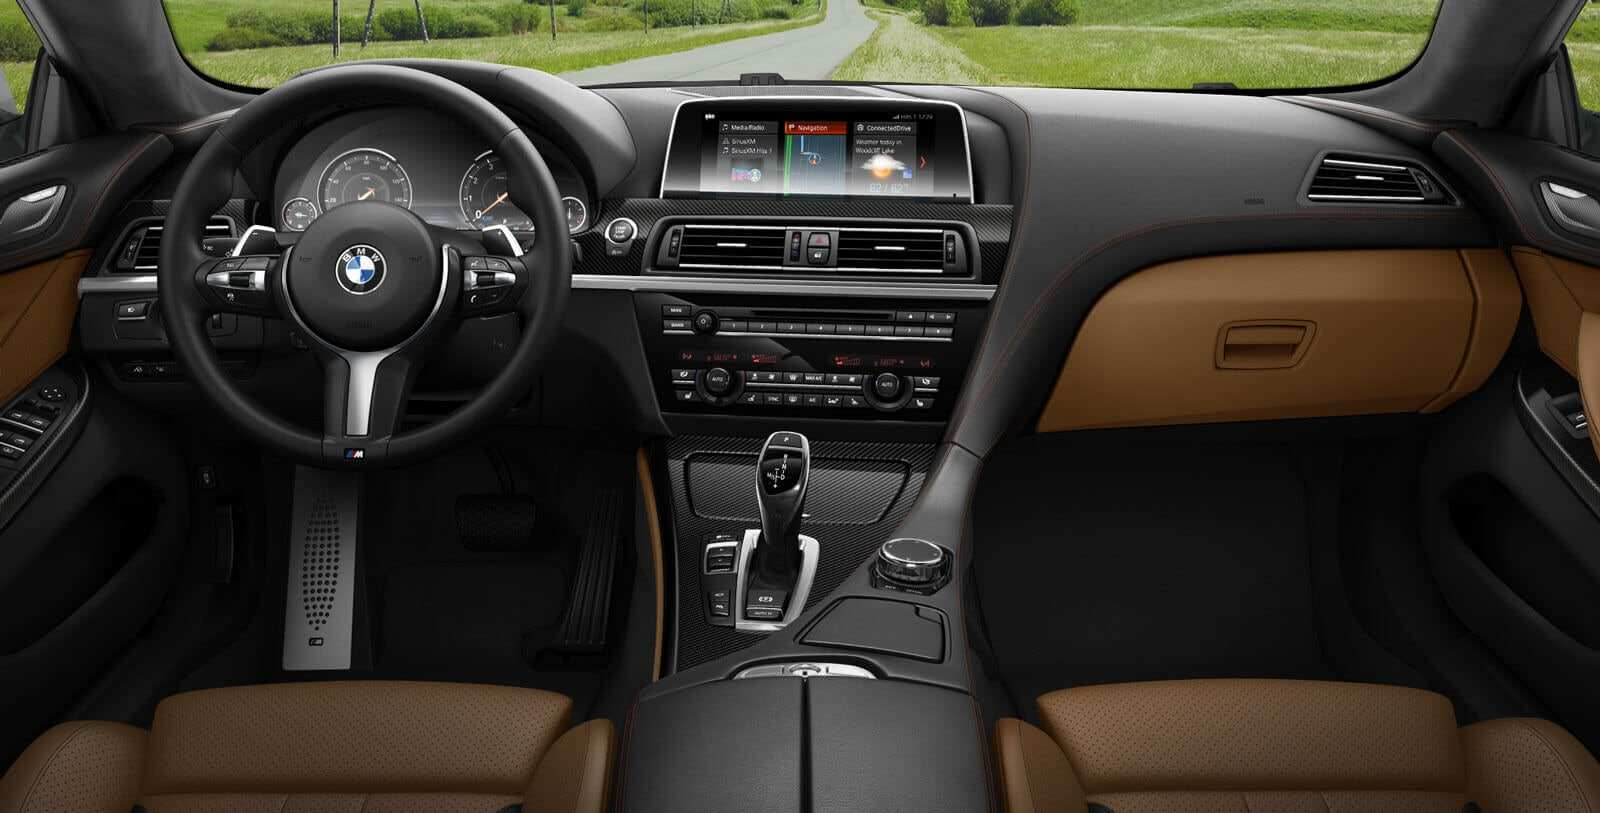 19 The 2019 Bmw 650I Xdrive Gran Coupe Exterior And Interior